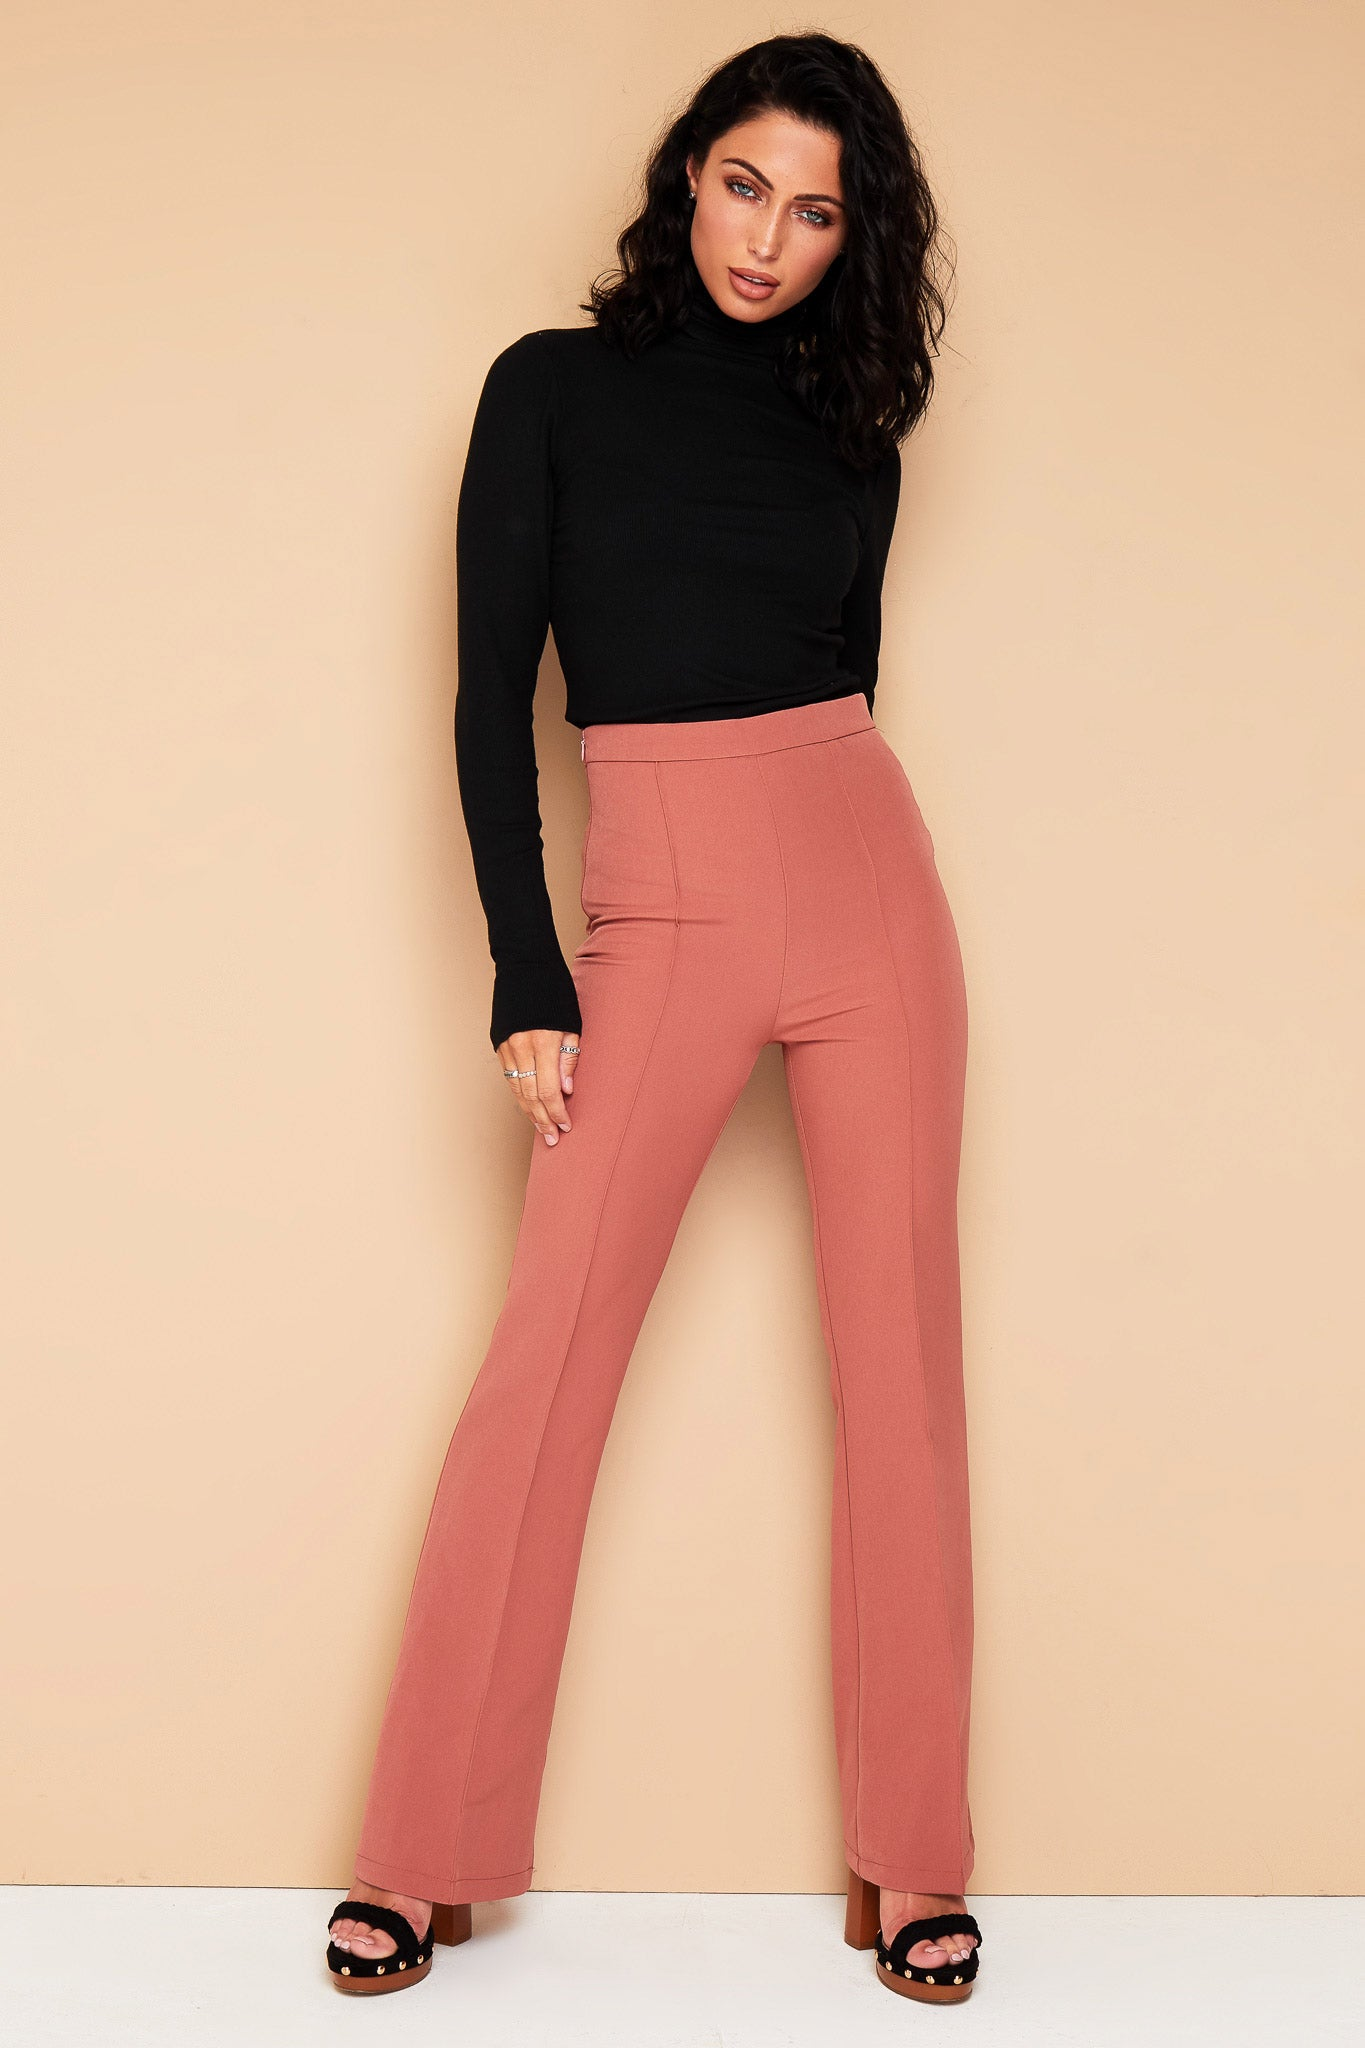 DUSKY ROSE PINK TROUSERS